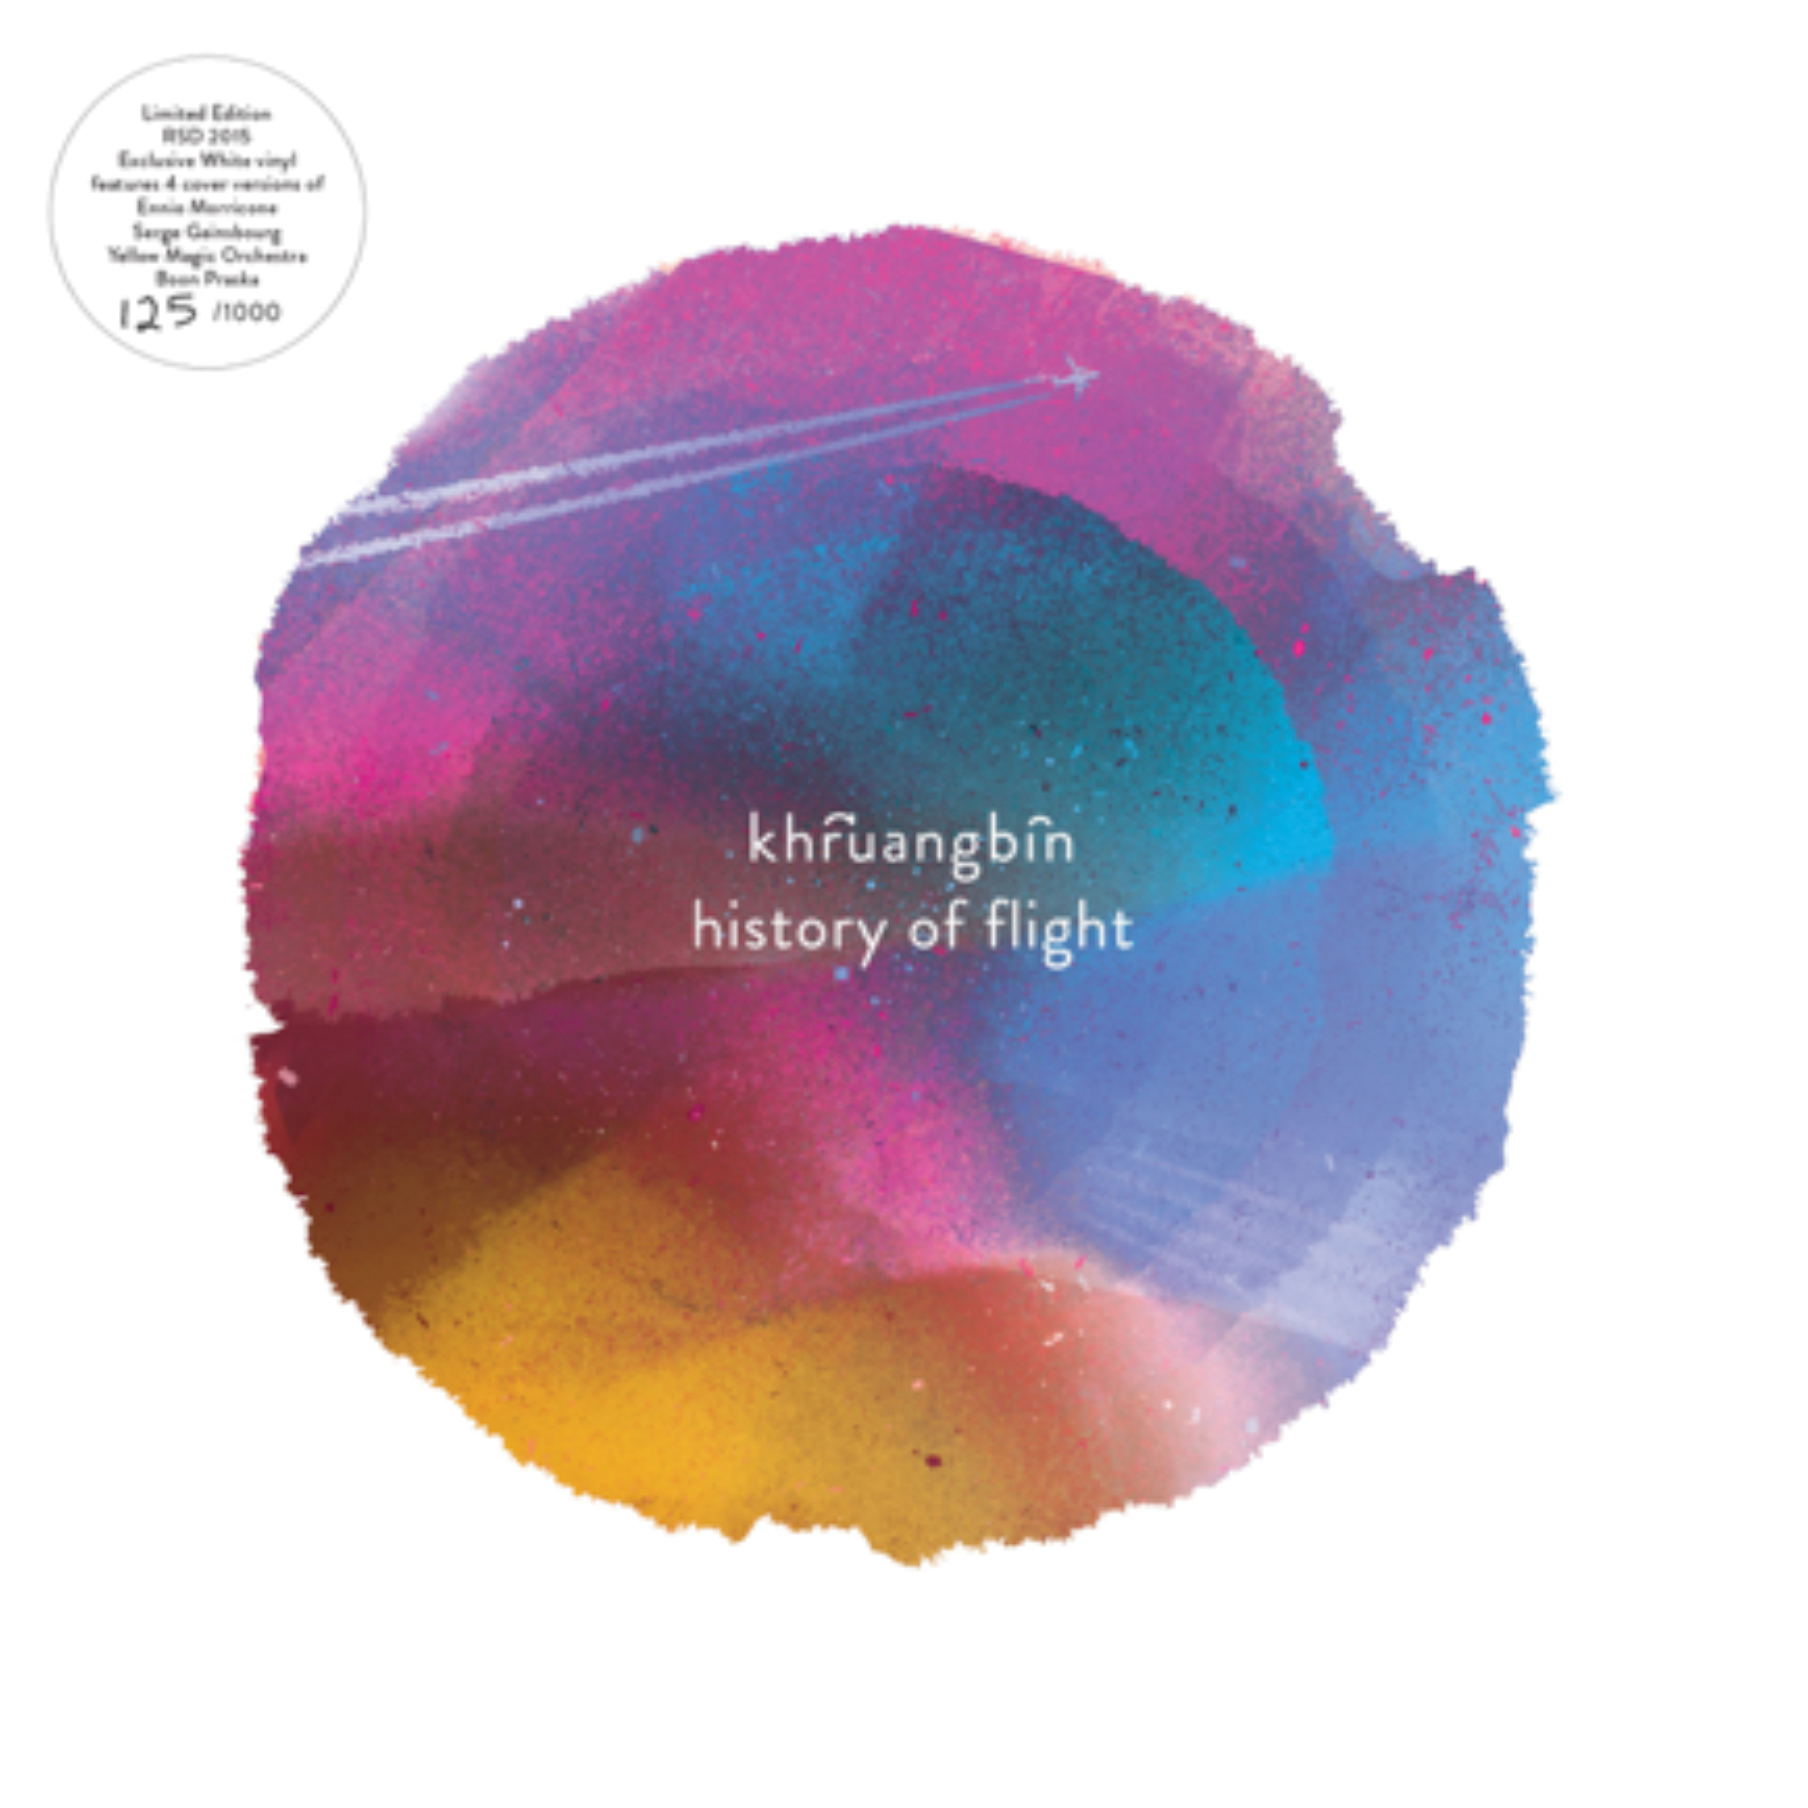 Khruangbin - History of Flight EP